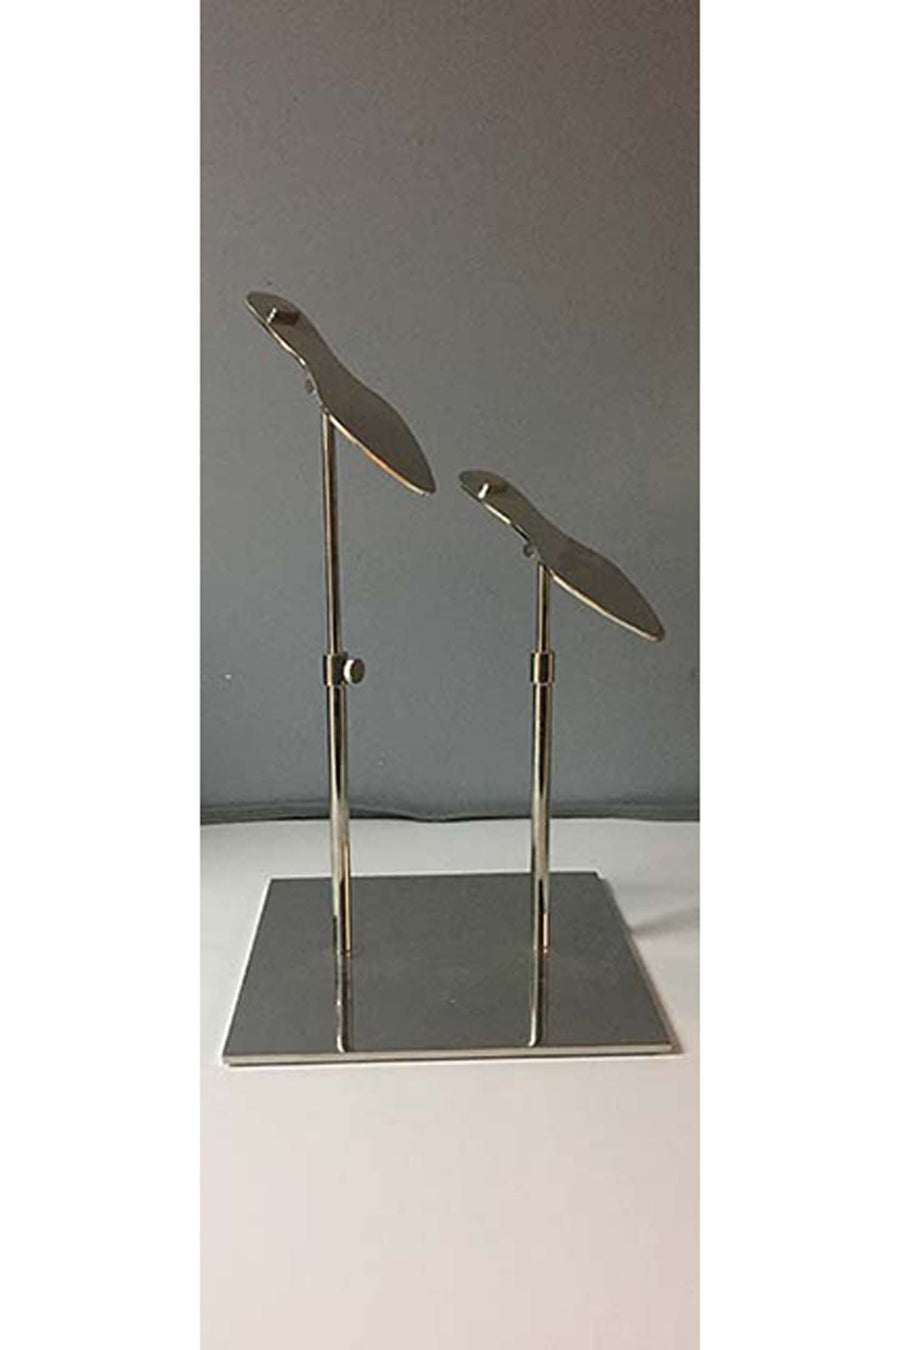 metal plated shoe stand with two uneven shoe holders and a square base